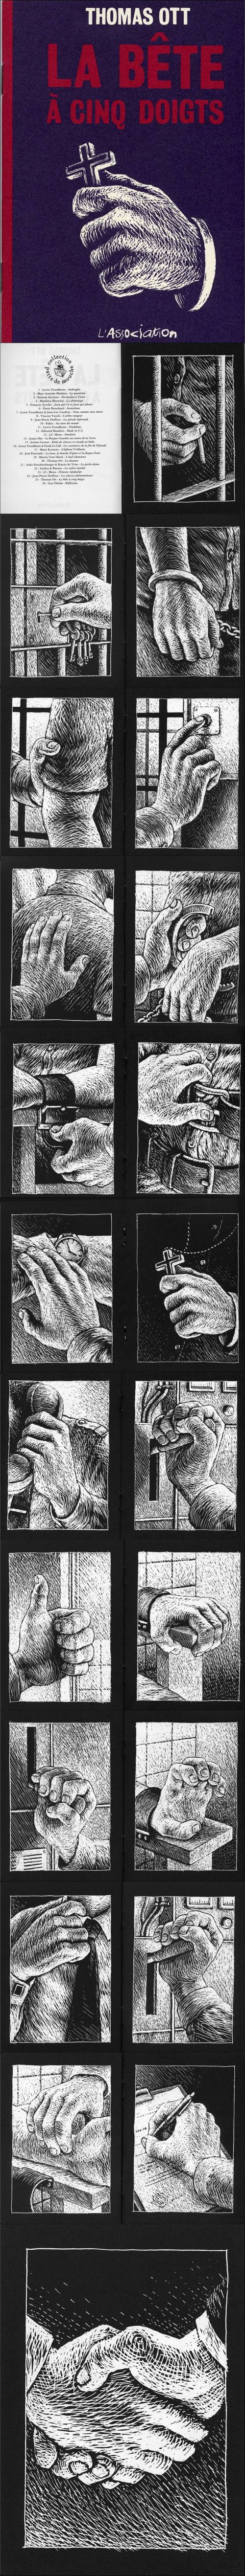 La_Bete_a_Cinq_Doigts_Full_Sequence Click for larger version